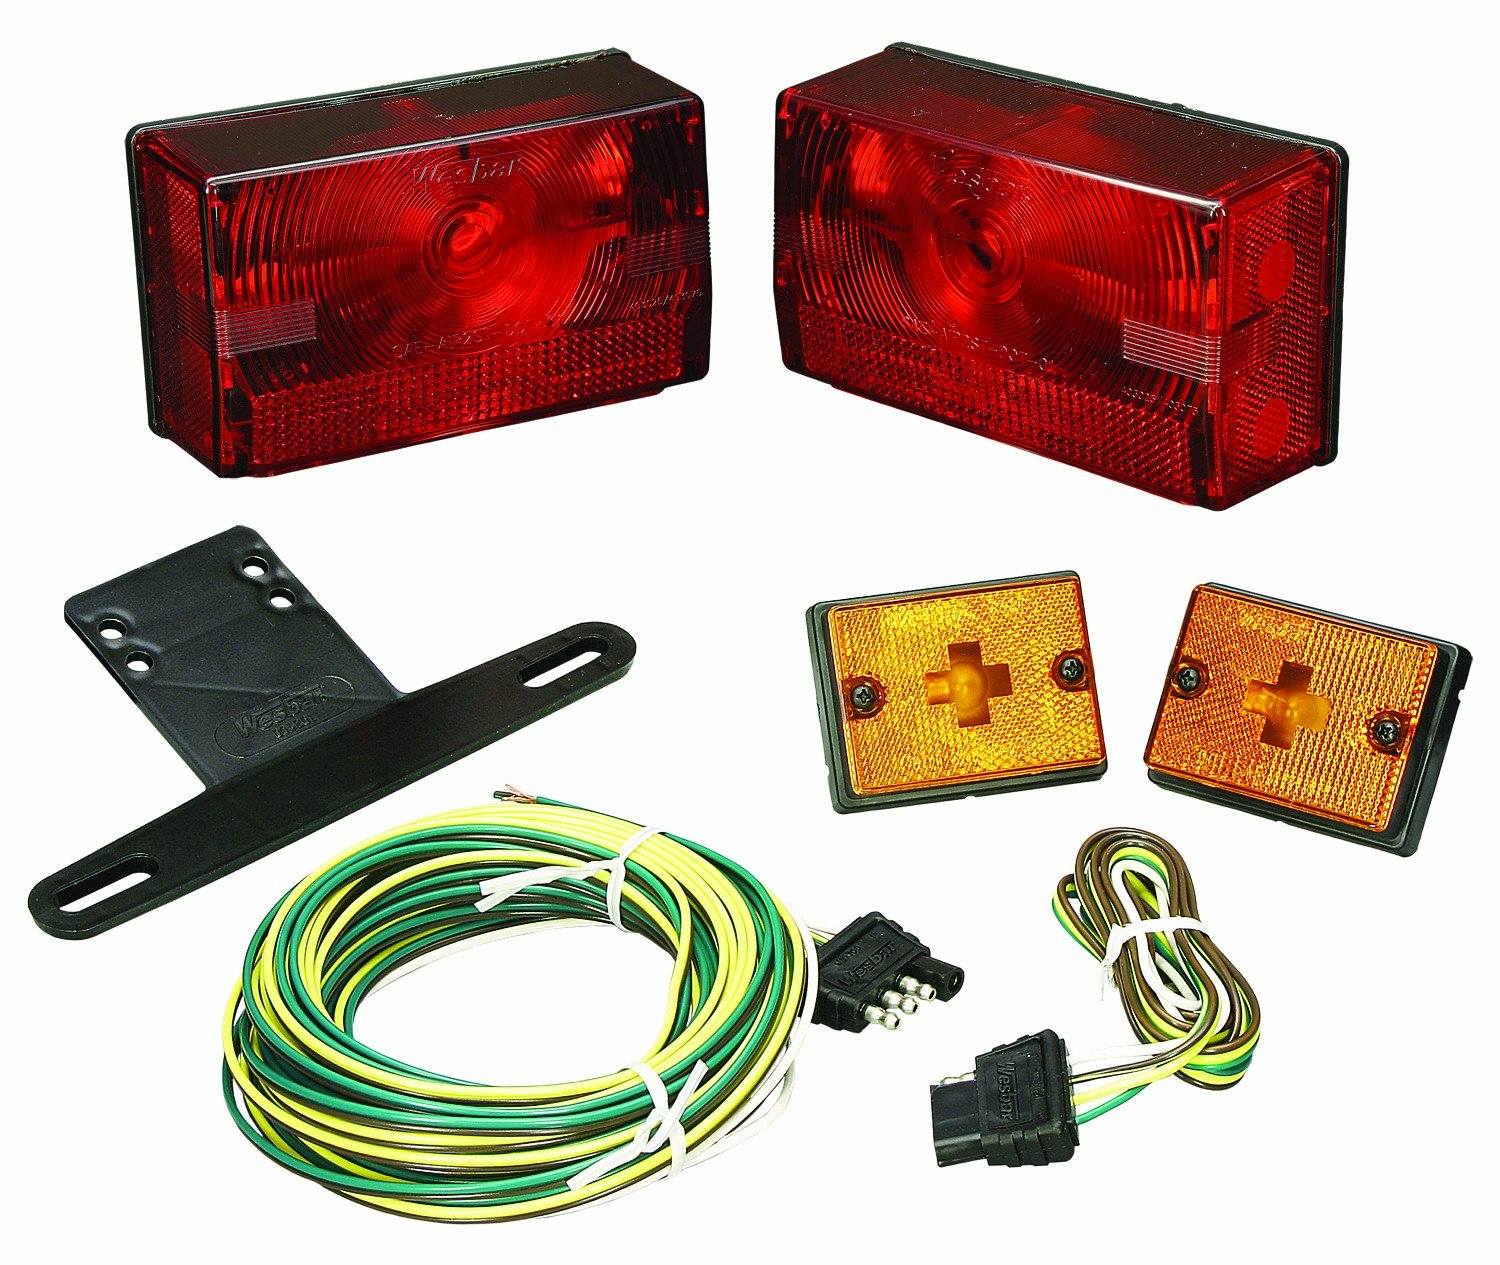 Wesbar 407515 Submersible Tail Light Kit with Side Marker/Clearance Lights, Over 80-Inch by Wesbar